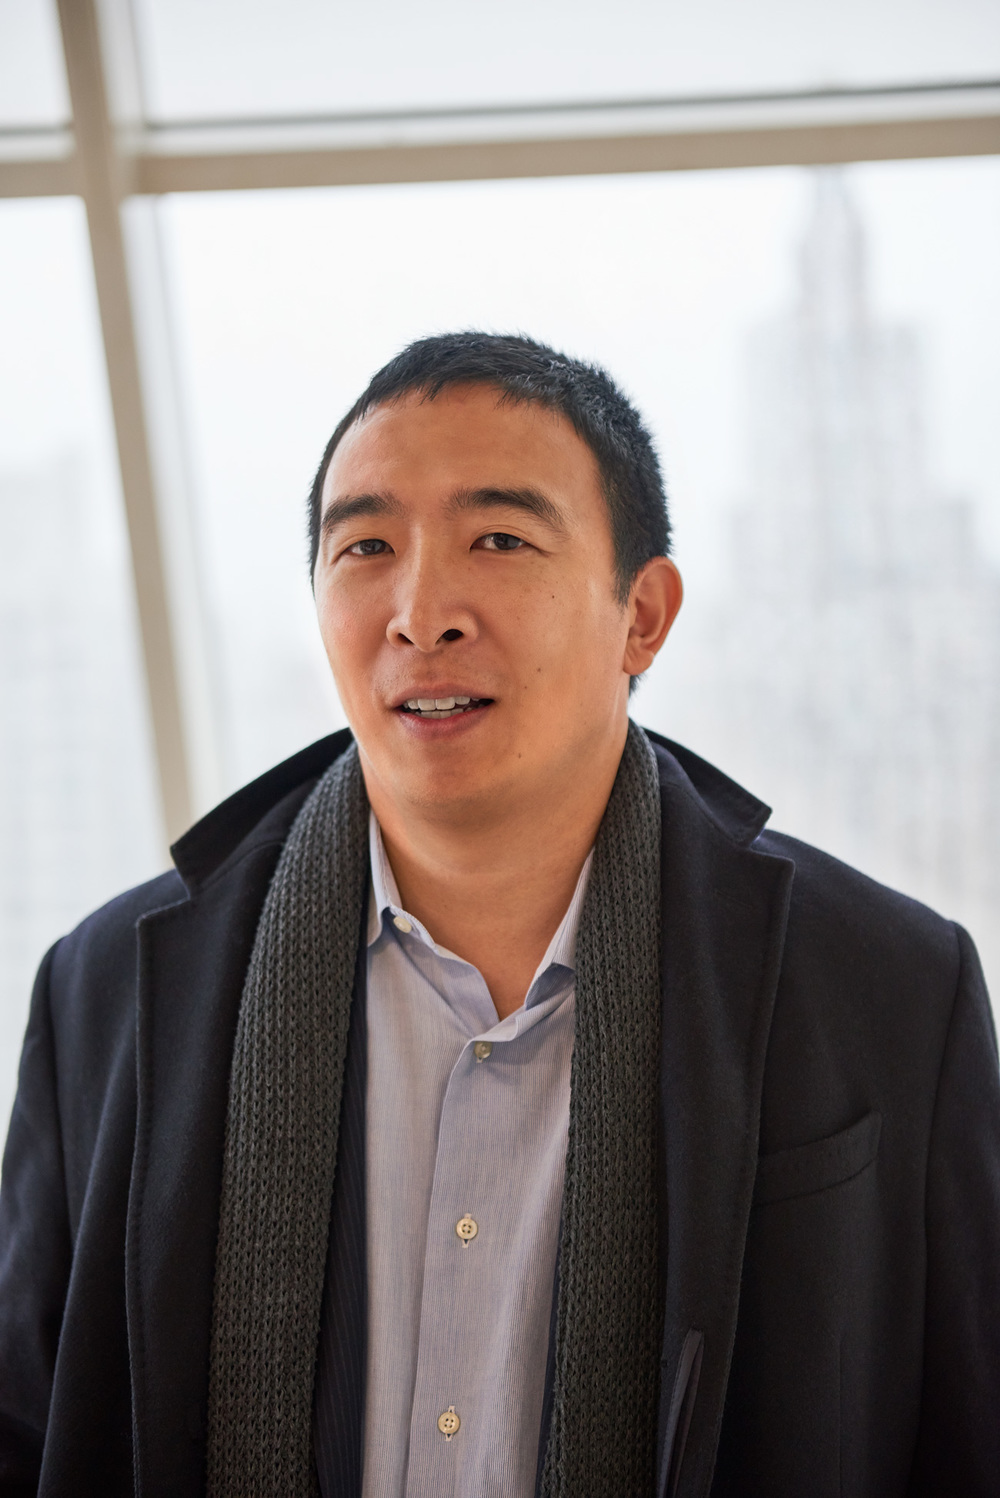 Andrew Yang, Founder and CEO of Venture for America.